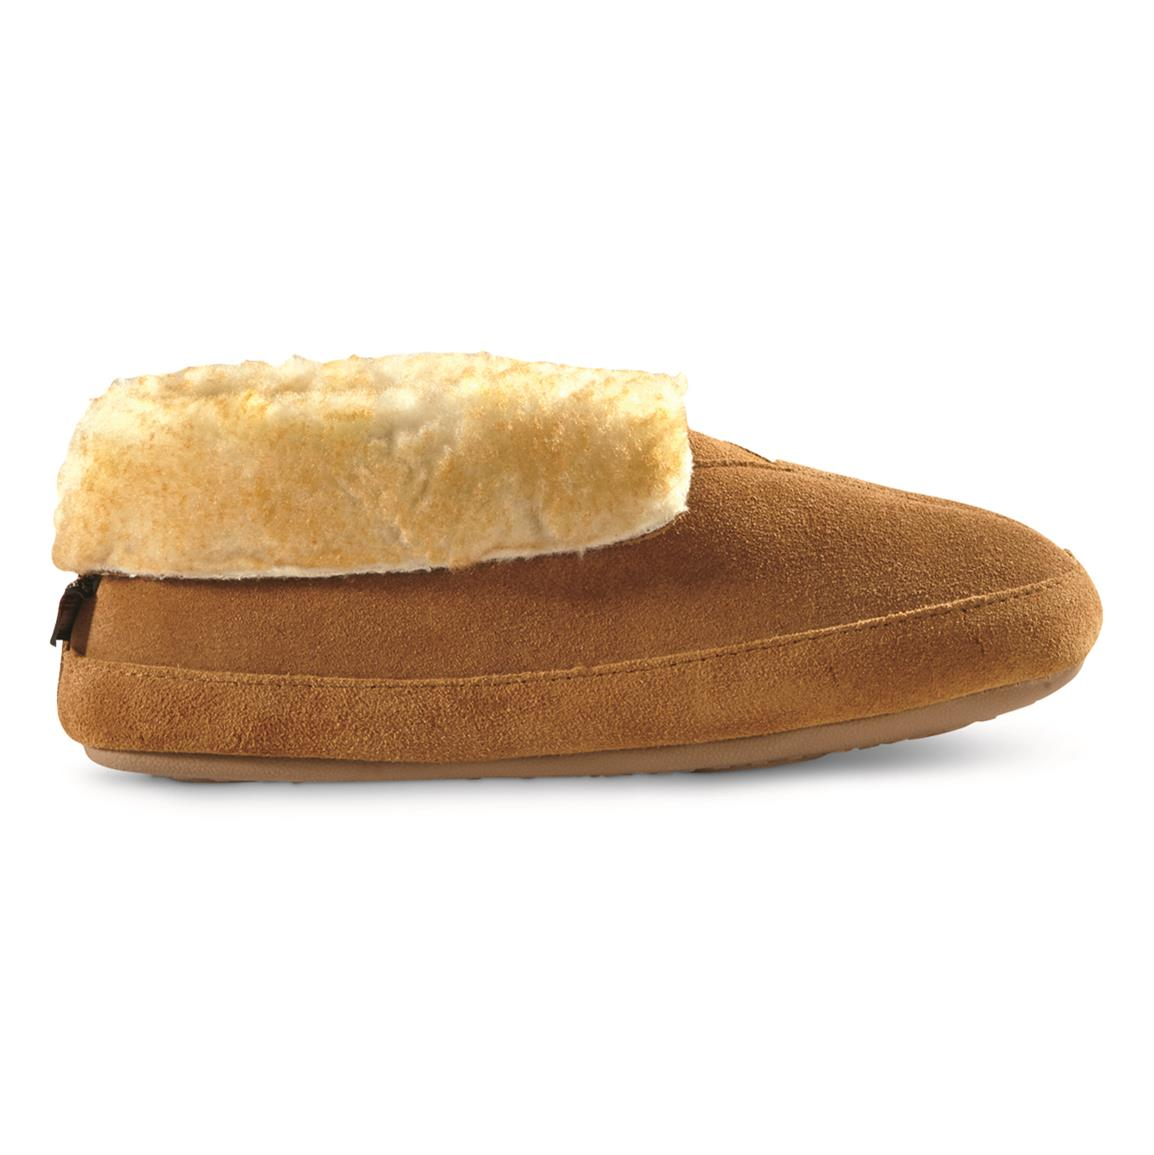 Genuine cowhide suede uppers for durable, long-lasting support